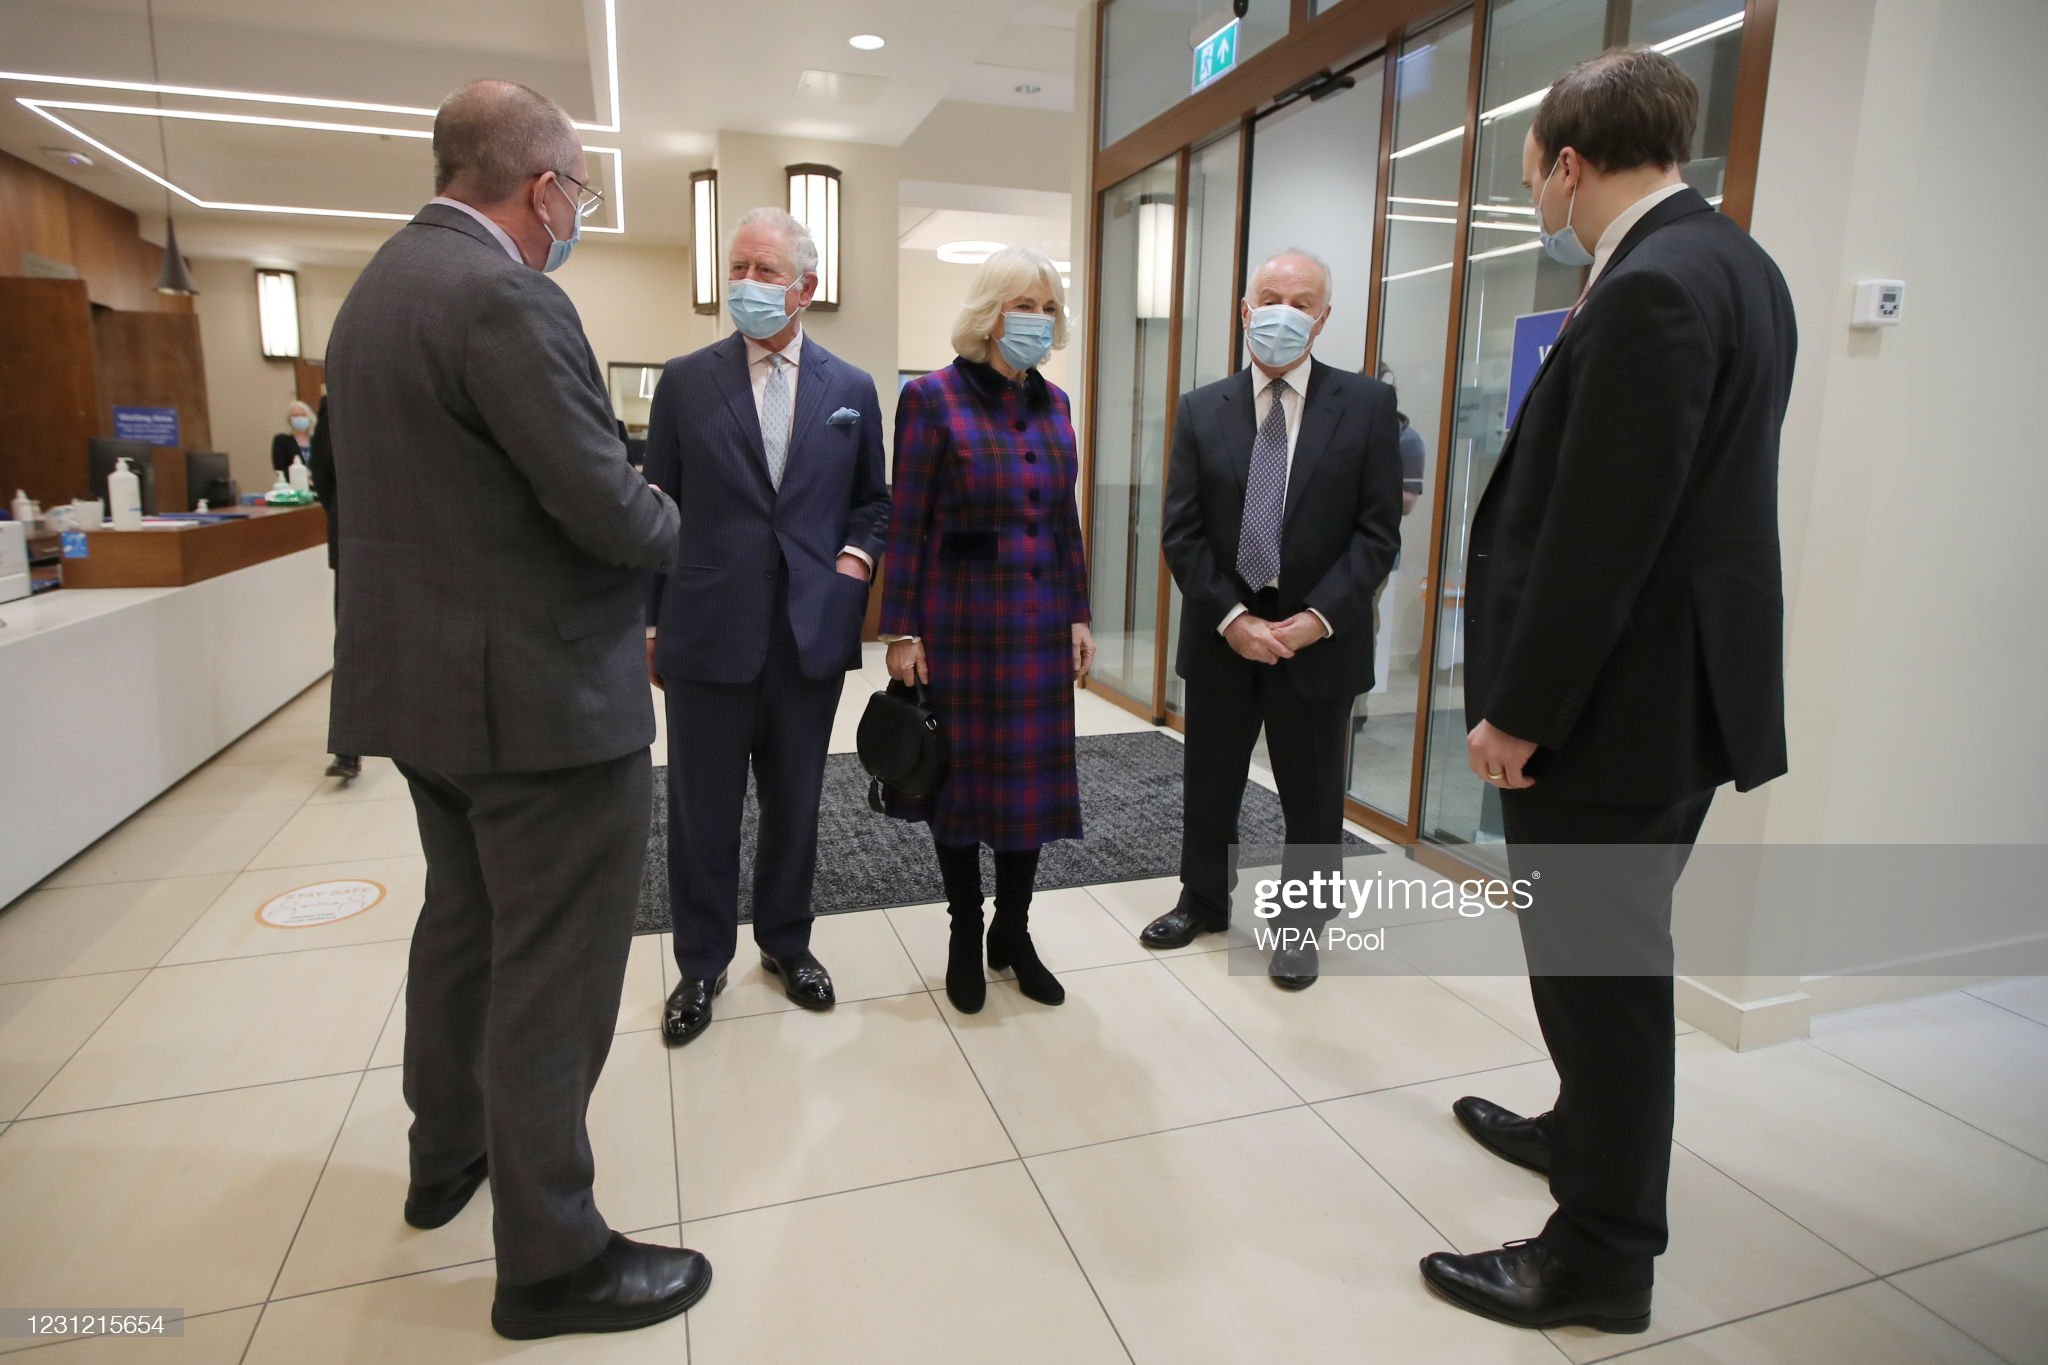 prince-charles-prince-of-wales-and-camilla-duchess-of-cornwall-speak-picture-id1231215654